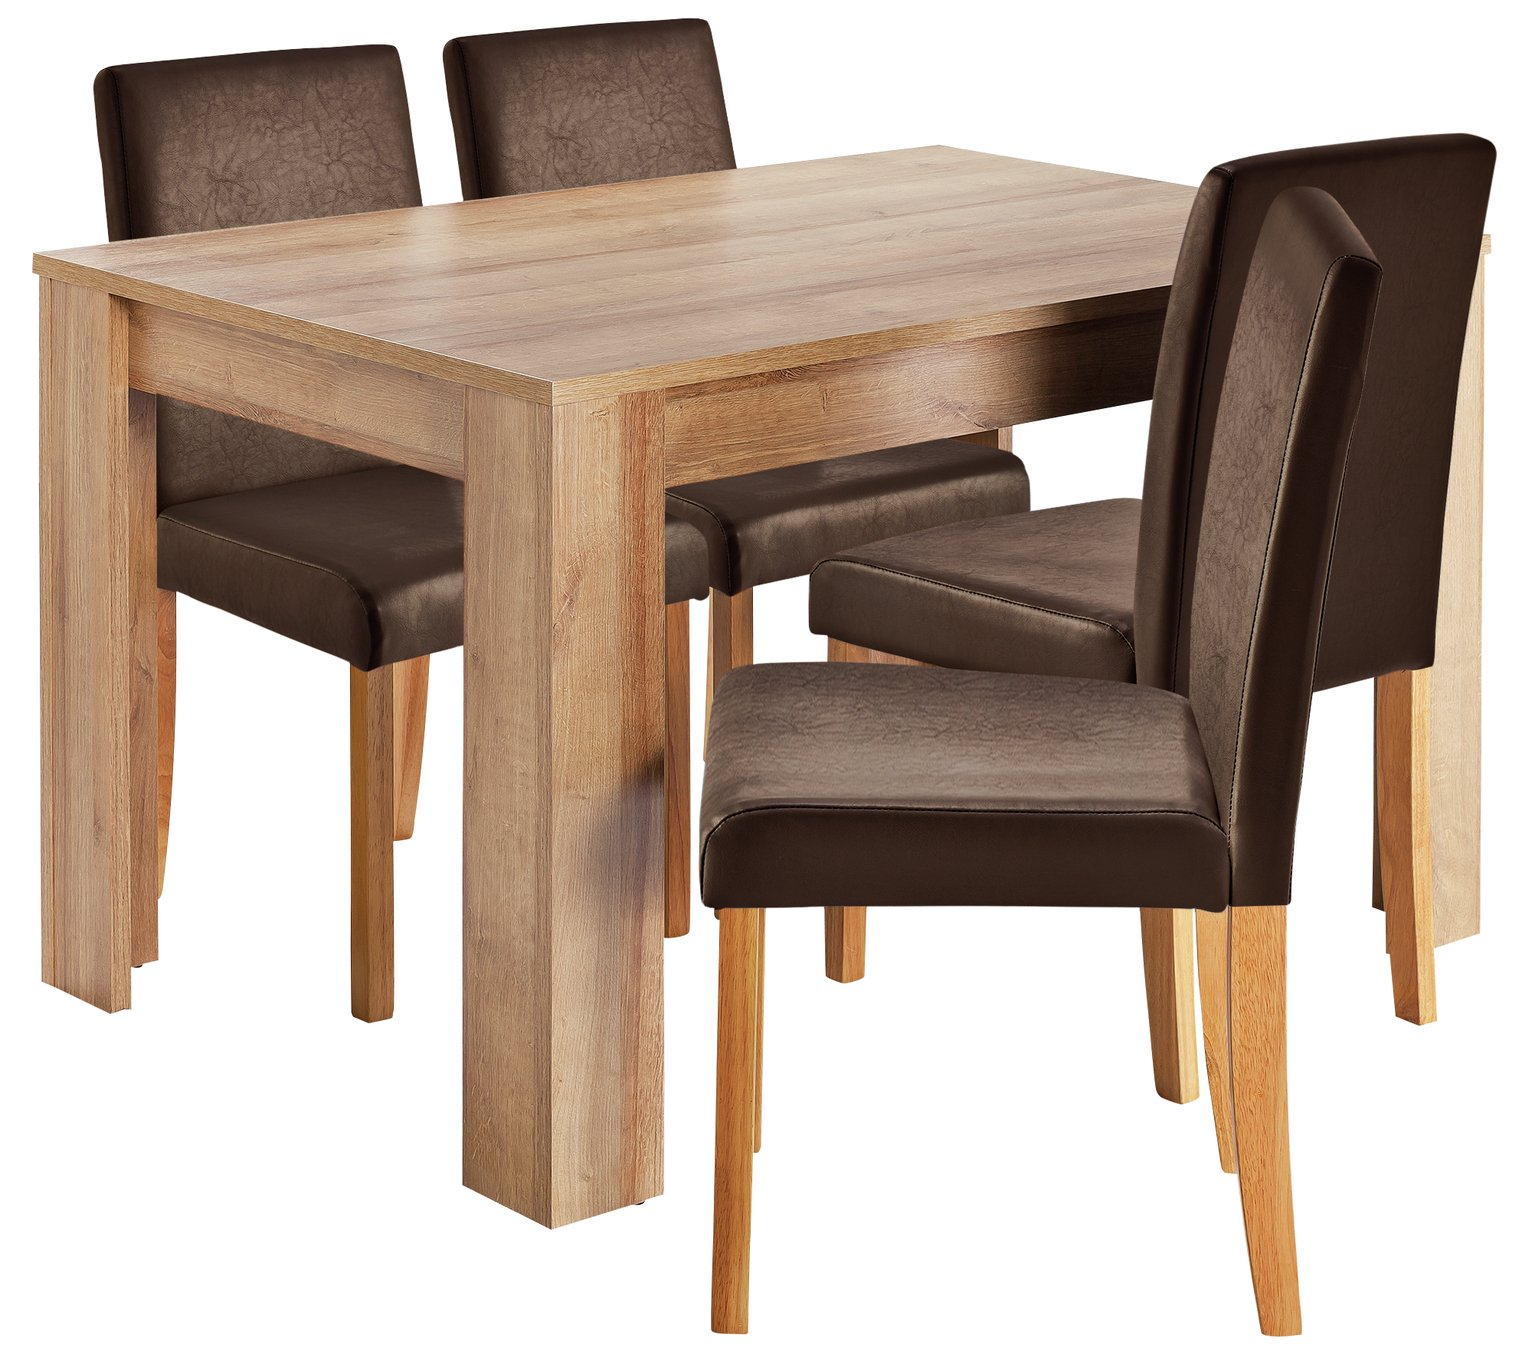 Argos Table And Chairs In Sale: SALE On HOME Miami Dining Table & 4 Chairs